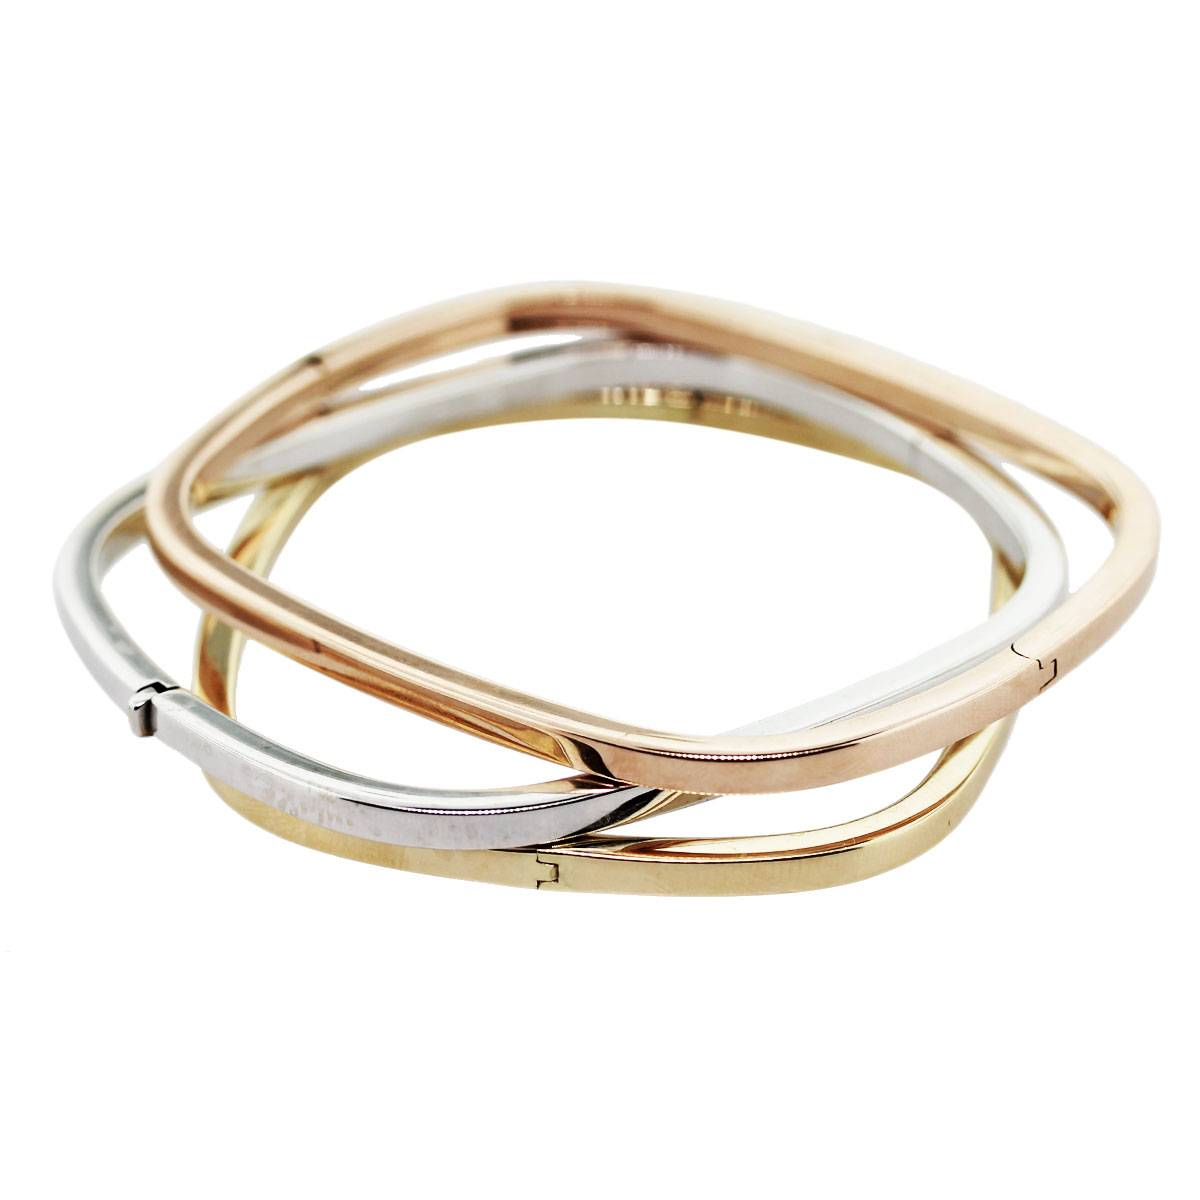 18K Tri Color Gold Square Bangle Bracelet Set Boca Raton